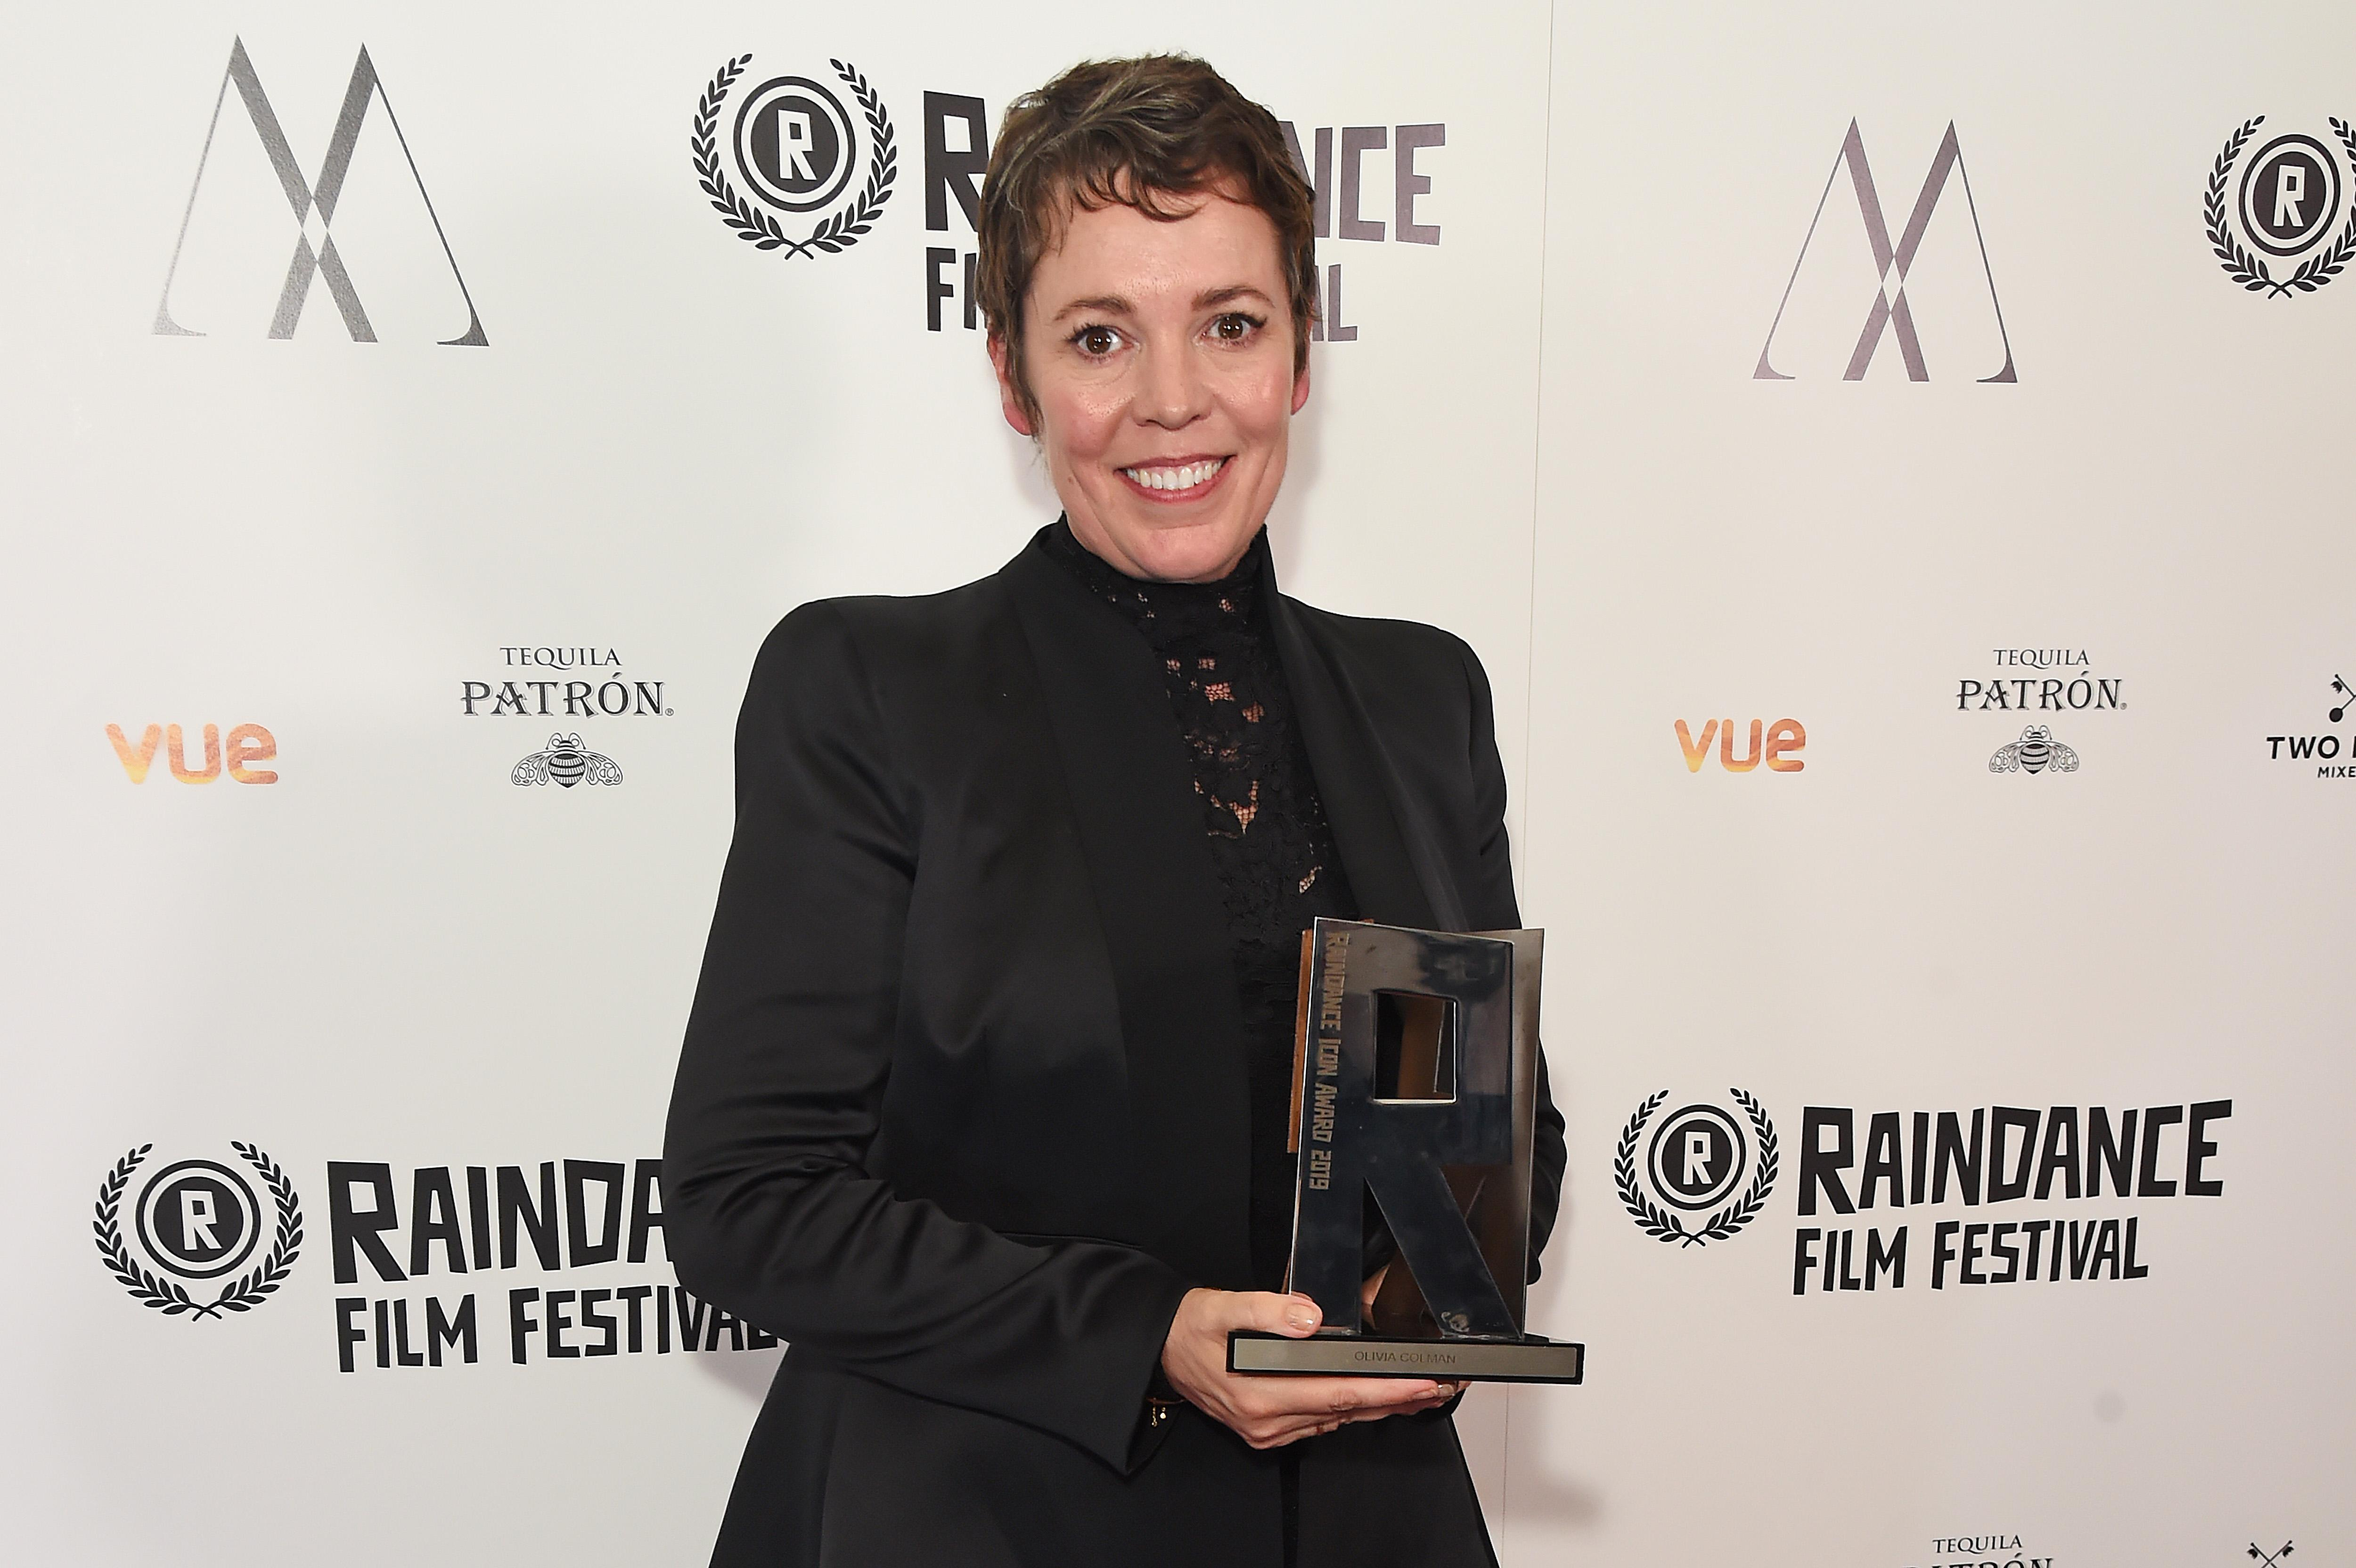 The Crown's Olivia Colman says meeting Prince William 'didn't go very well'